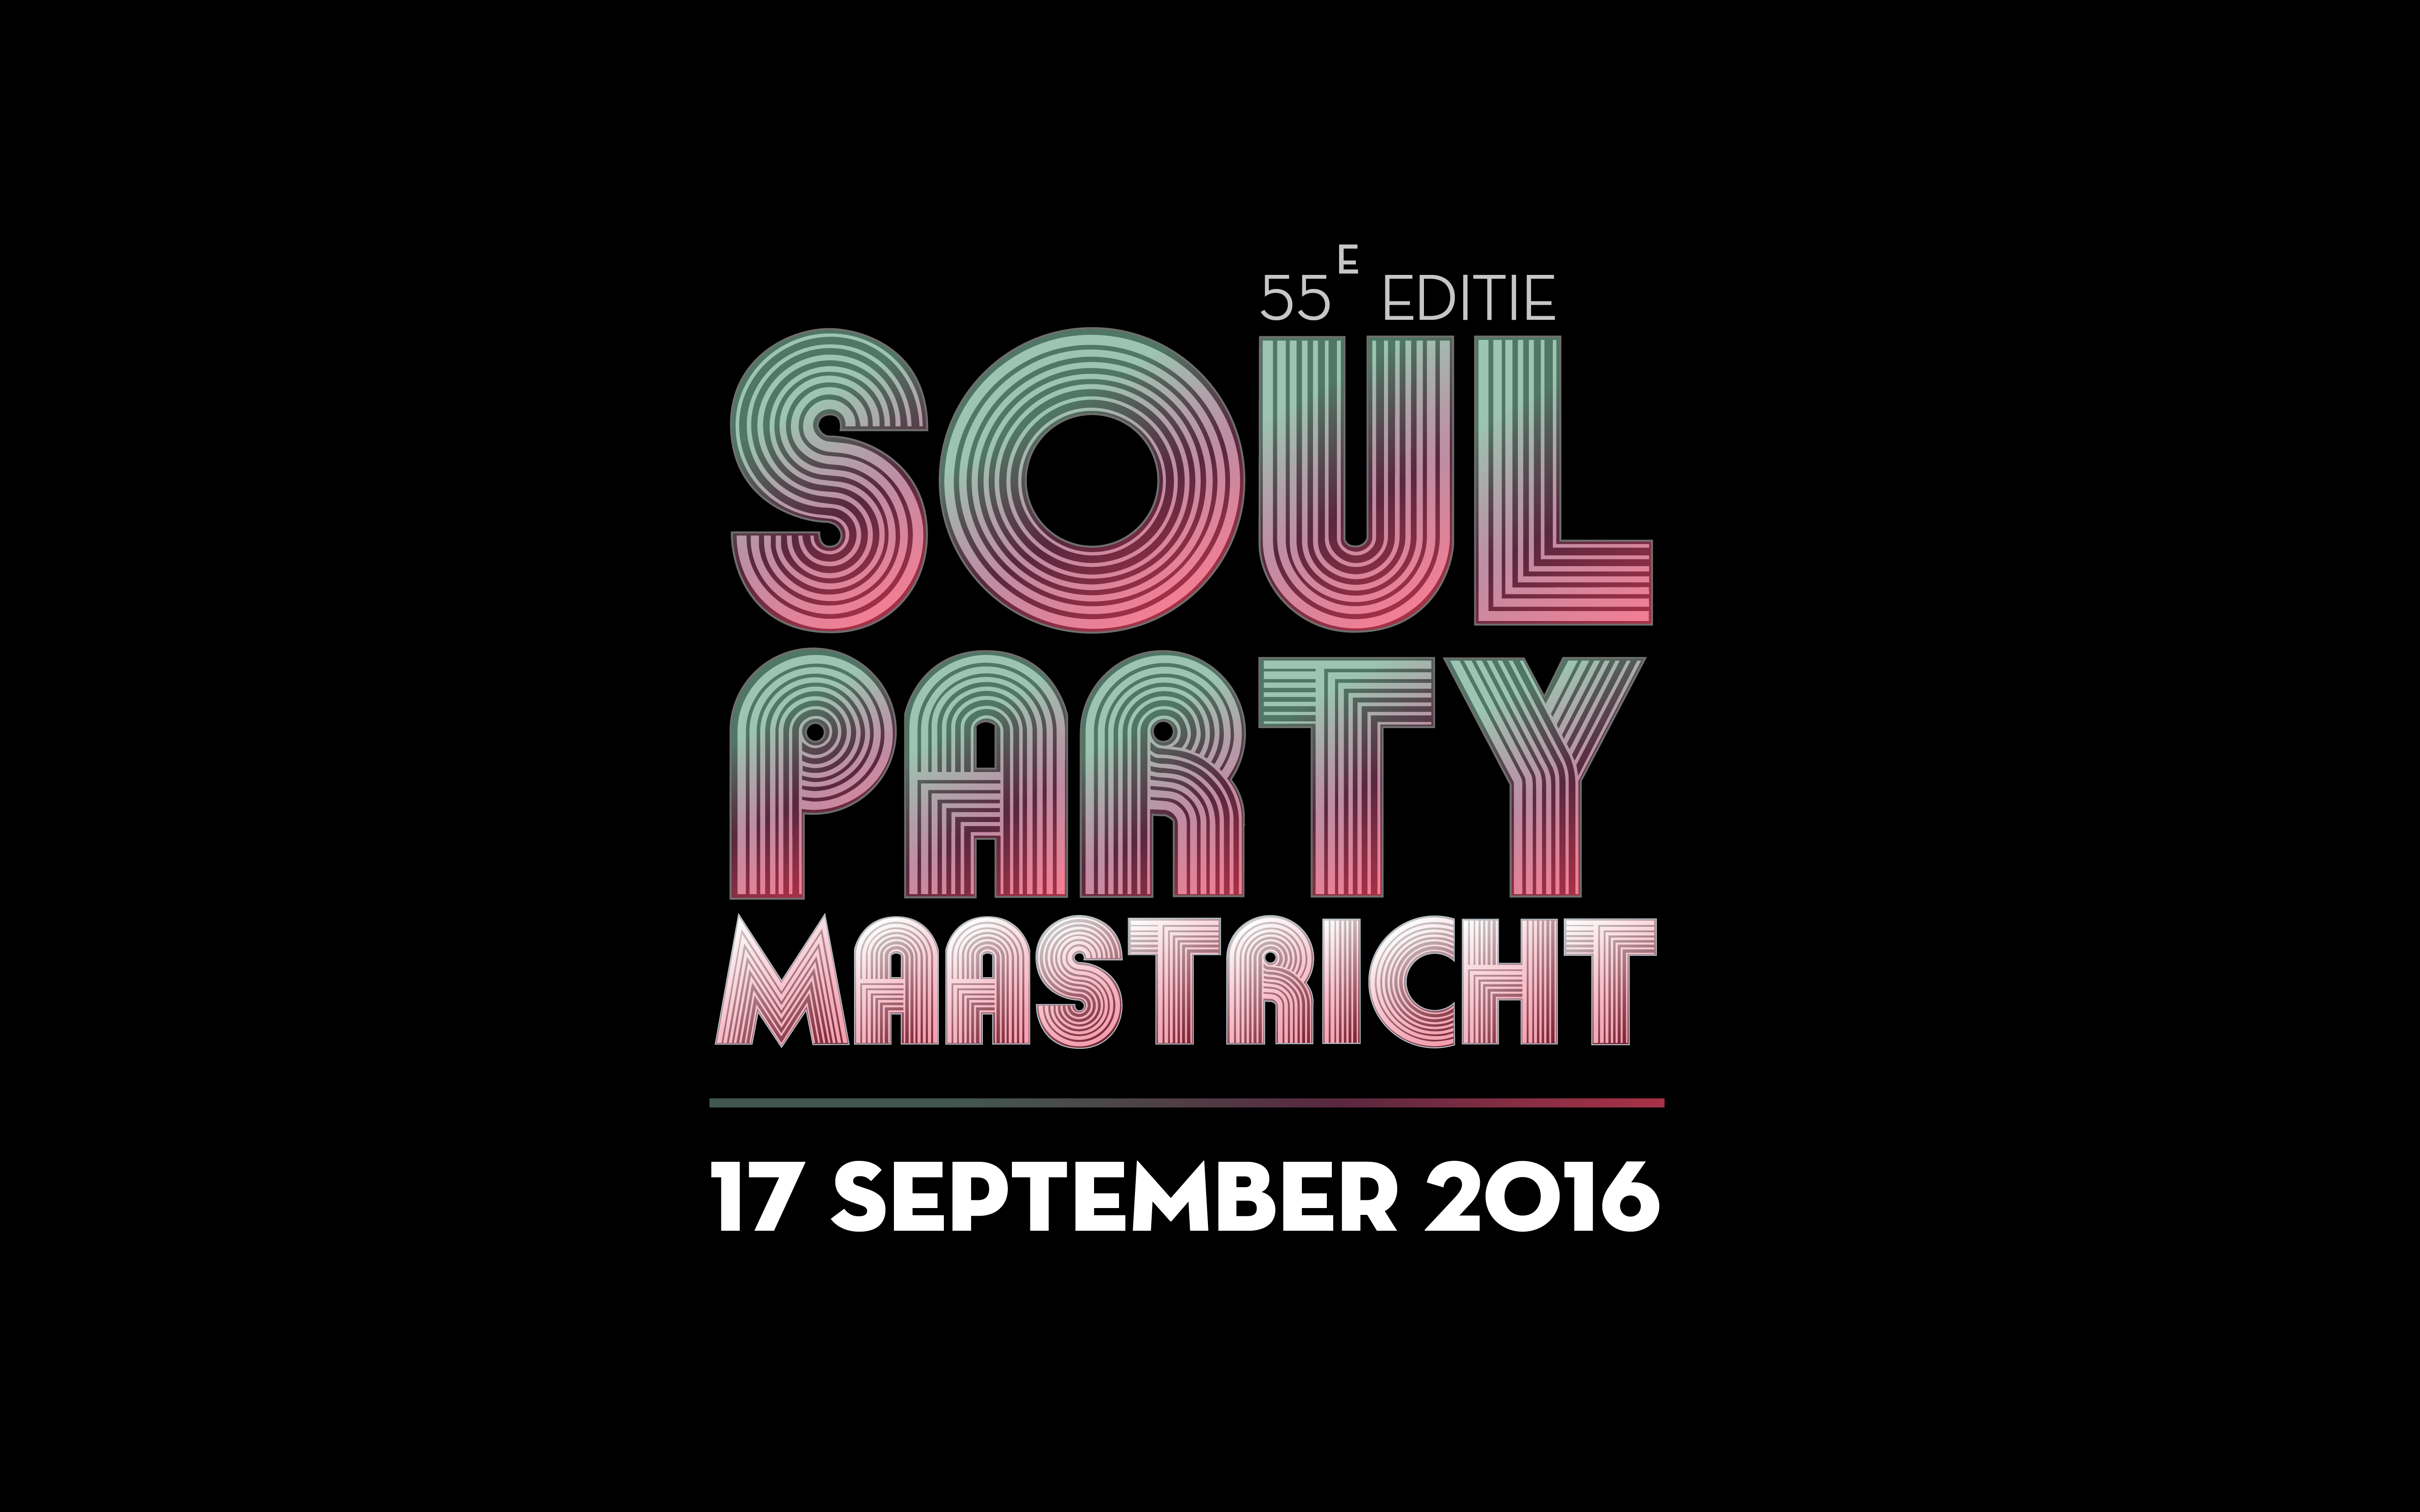 Soulparty 17 september 2016